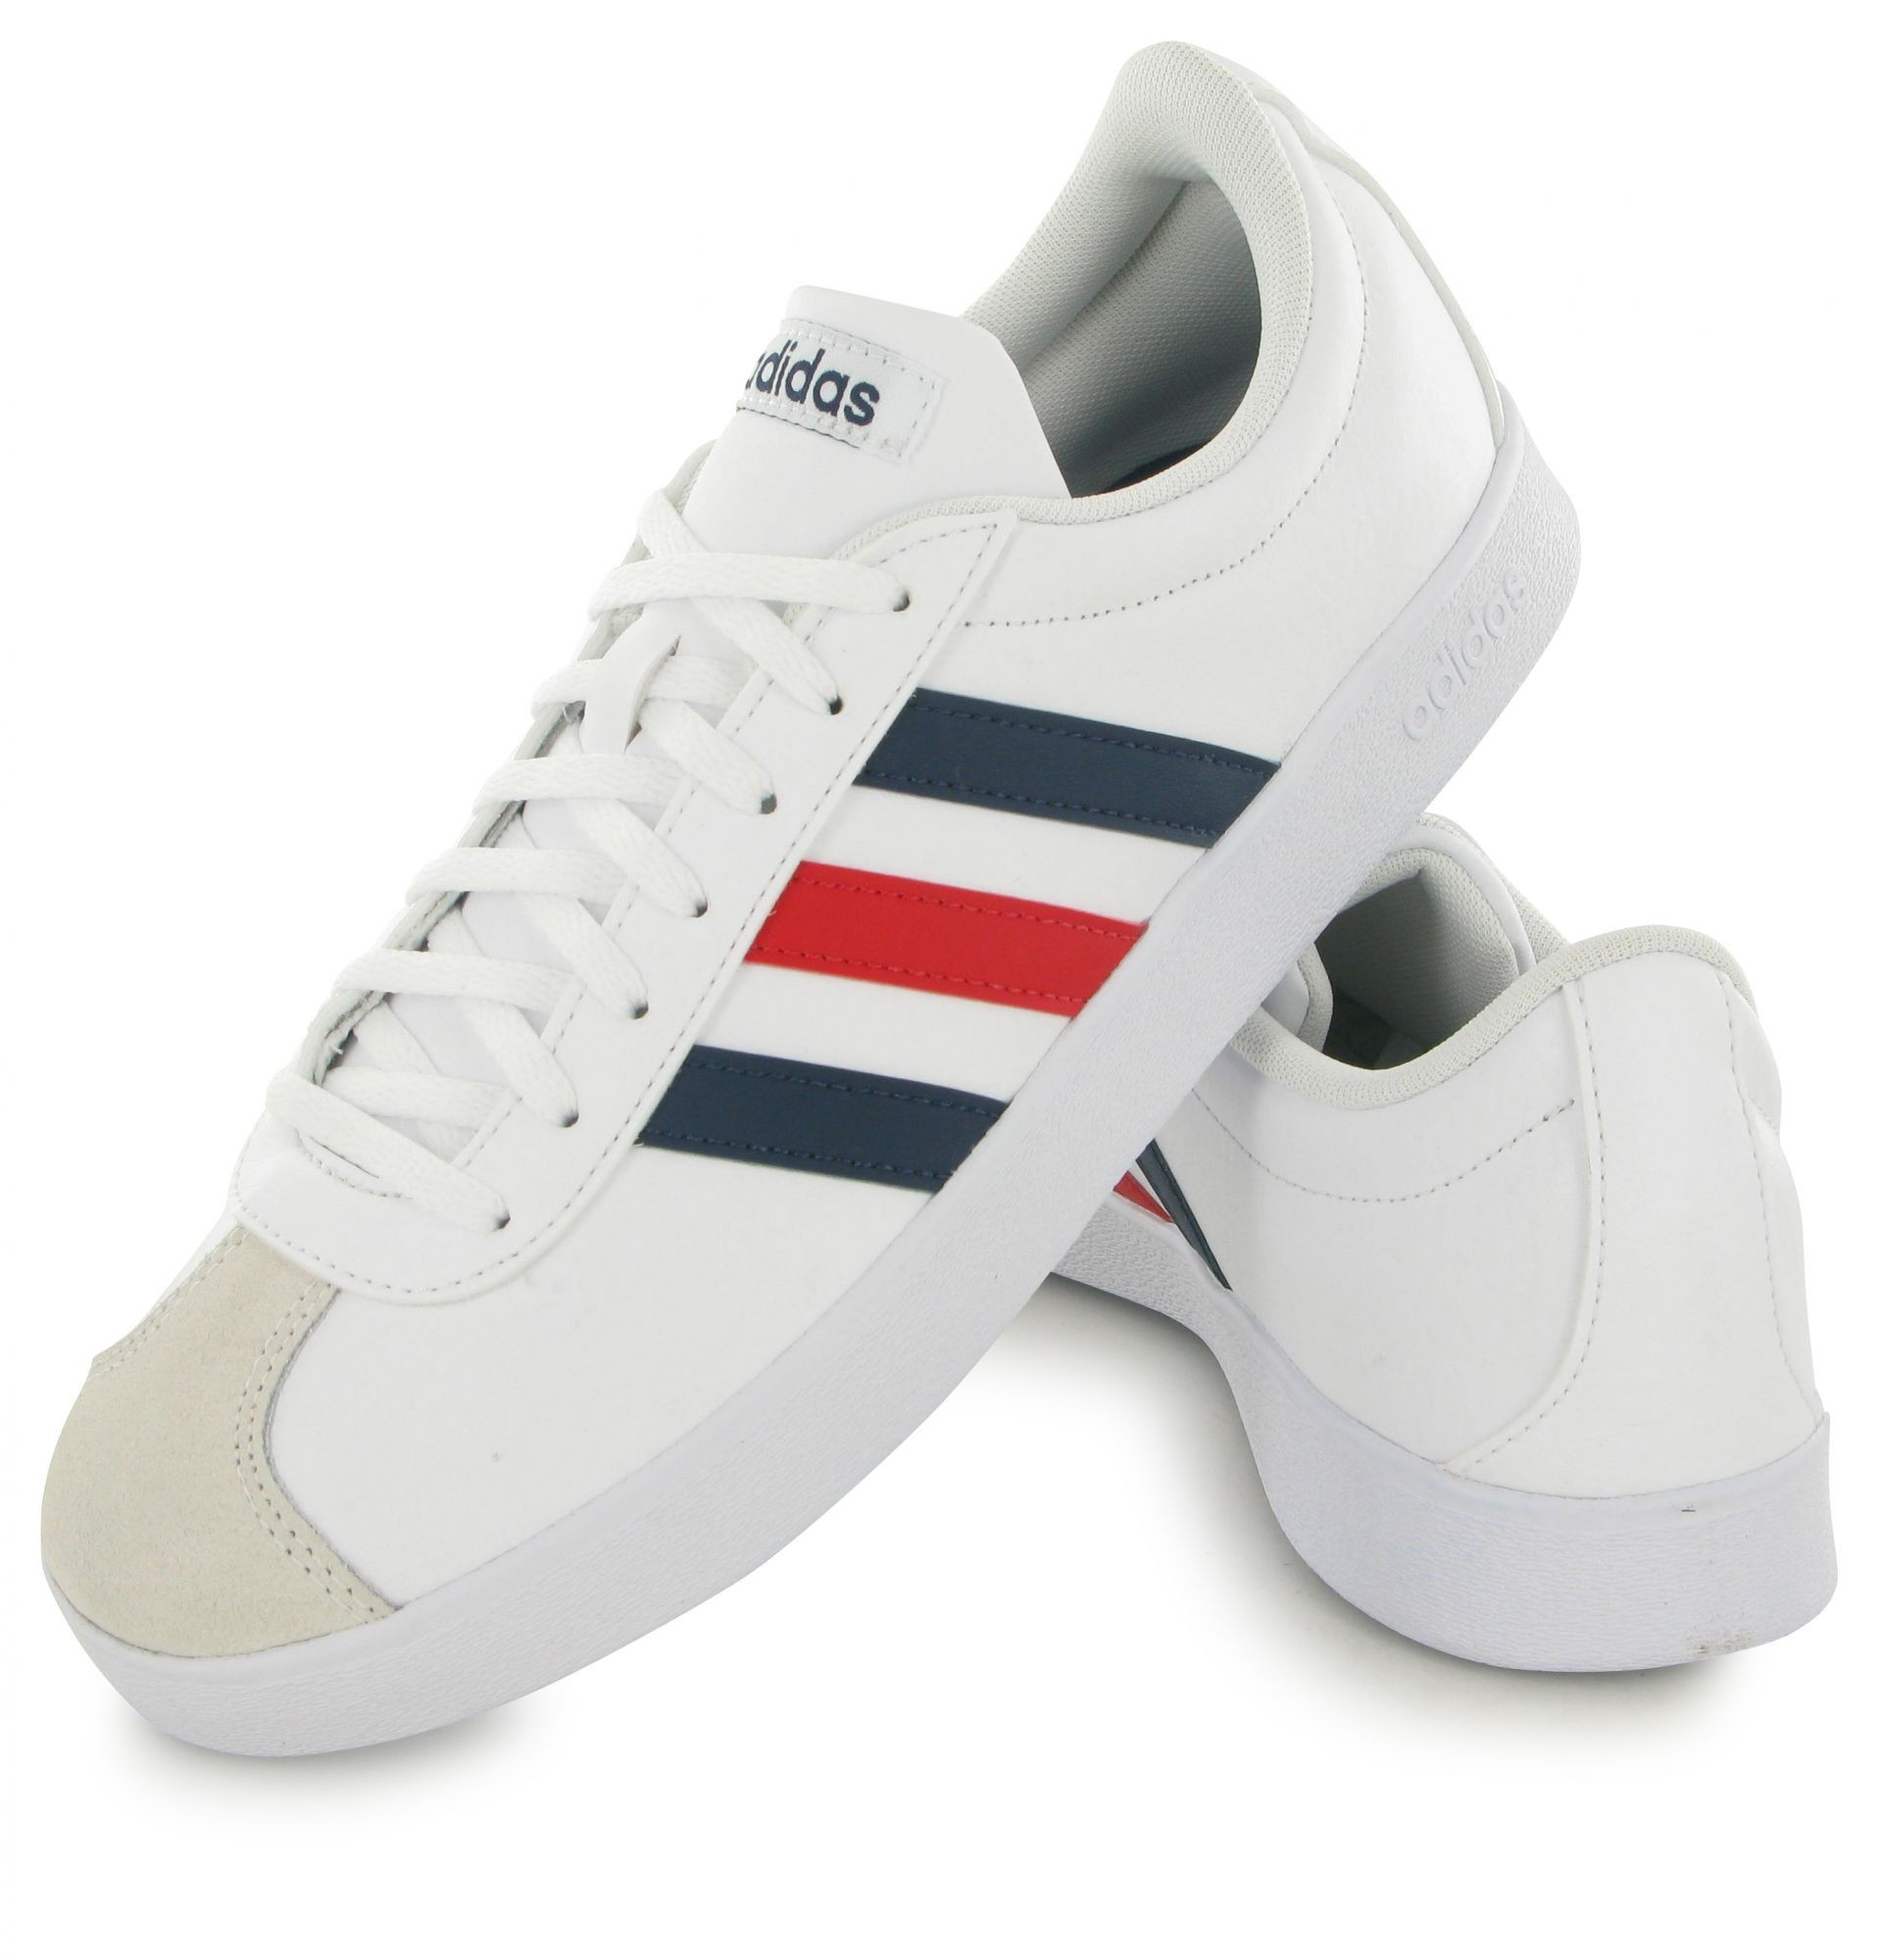 Adidas-Sneakers-Shoes-Boots-Schuhe-Sport-White-Vl-